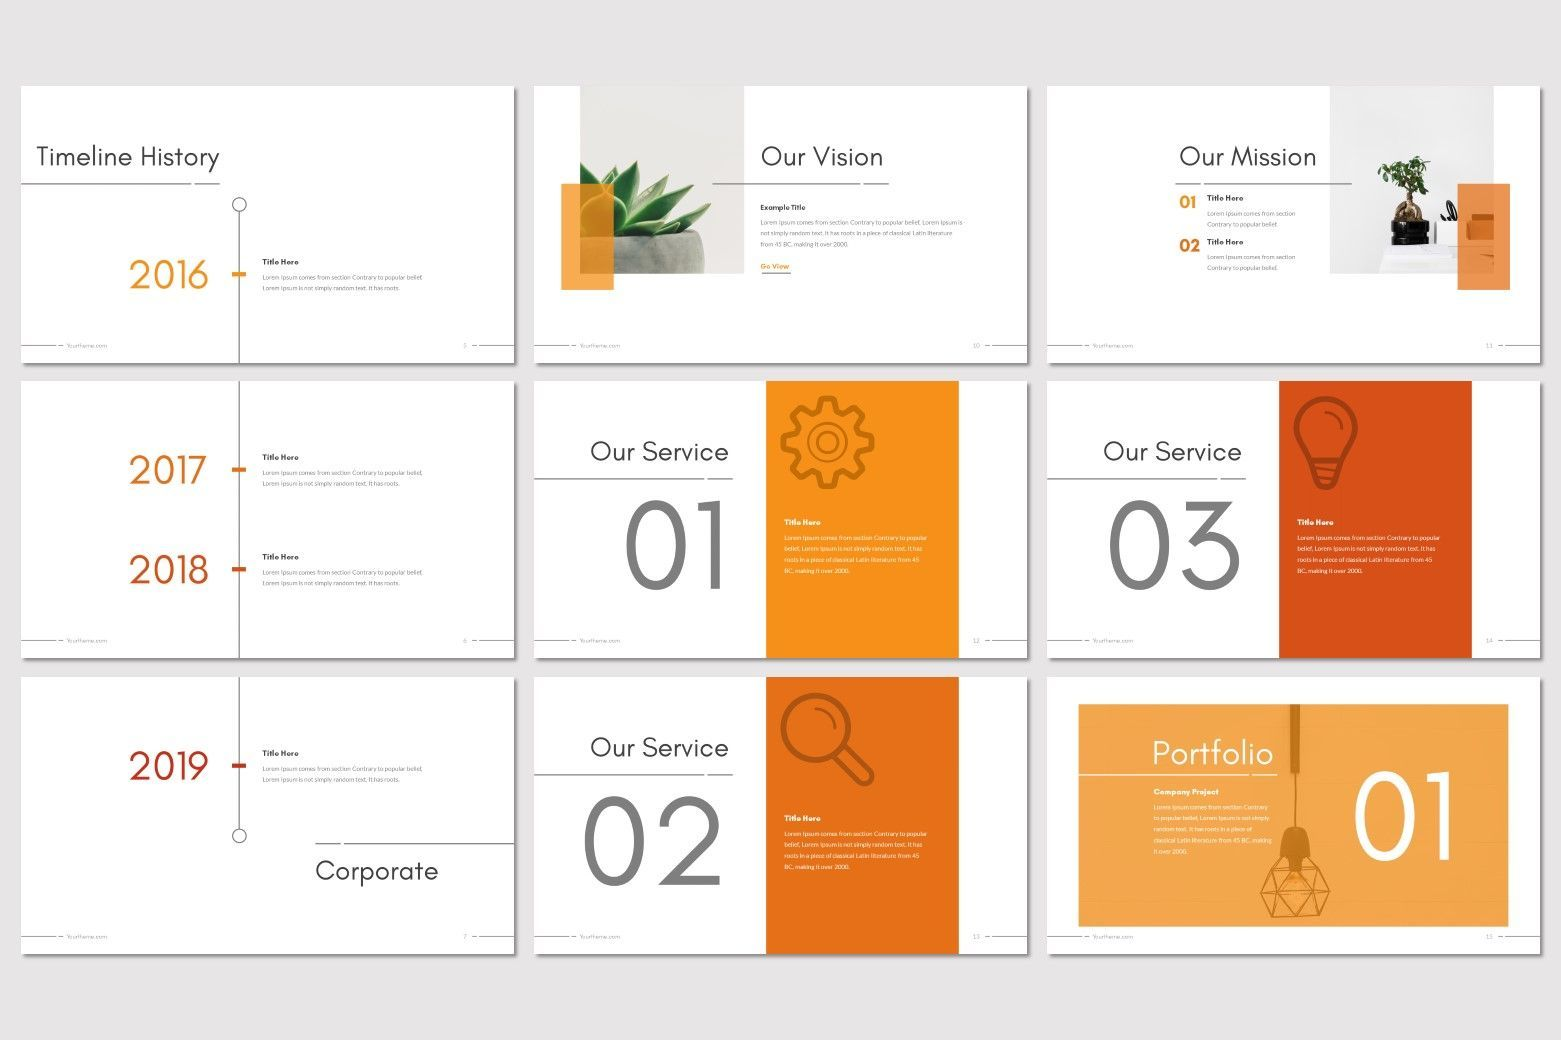 Moderno - PowerPoint Template, Slide 3, 08211, Presentation Templates — PoweredTemplate.com